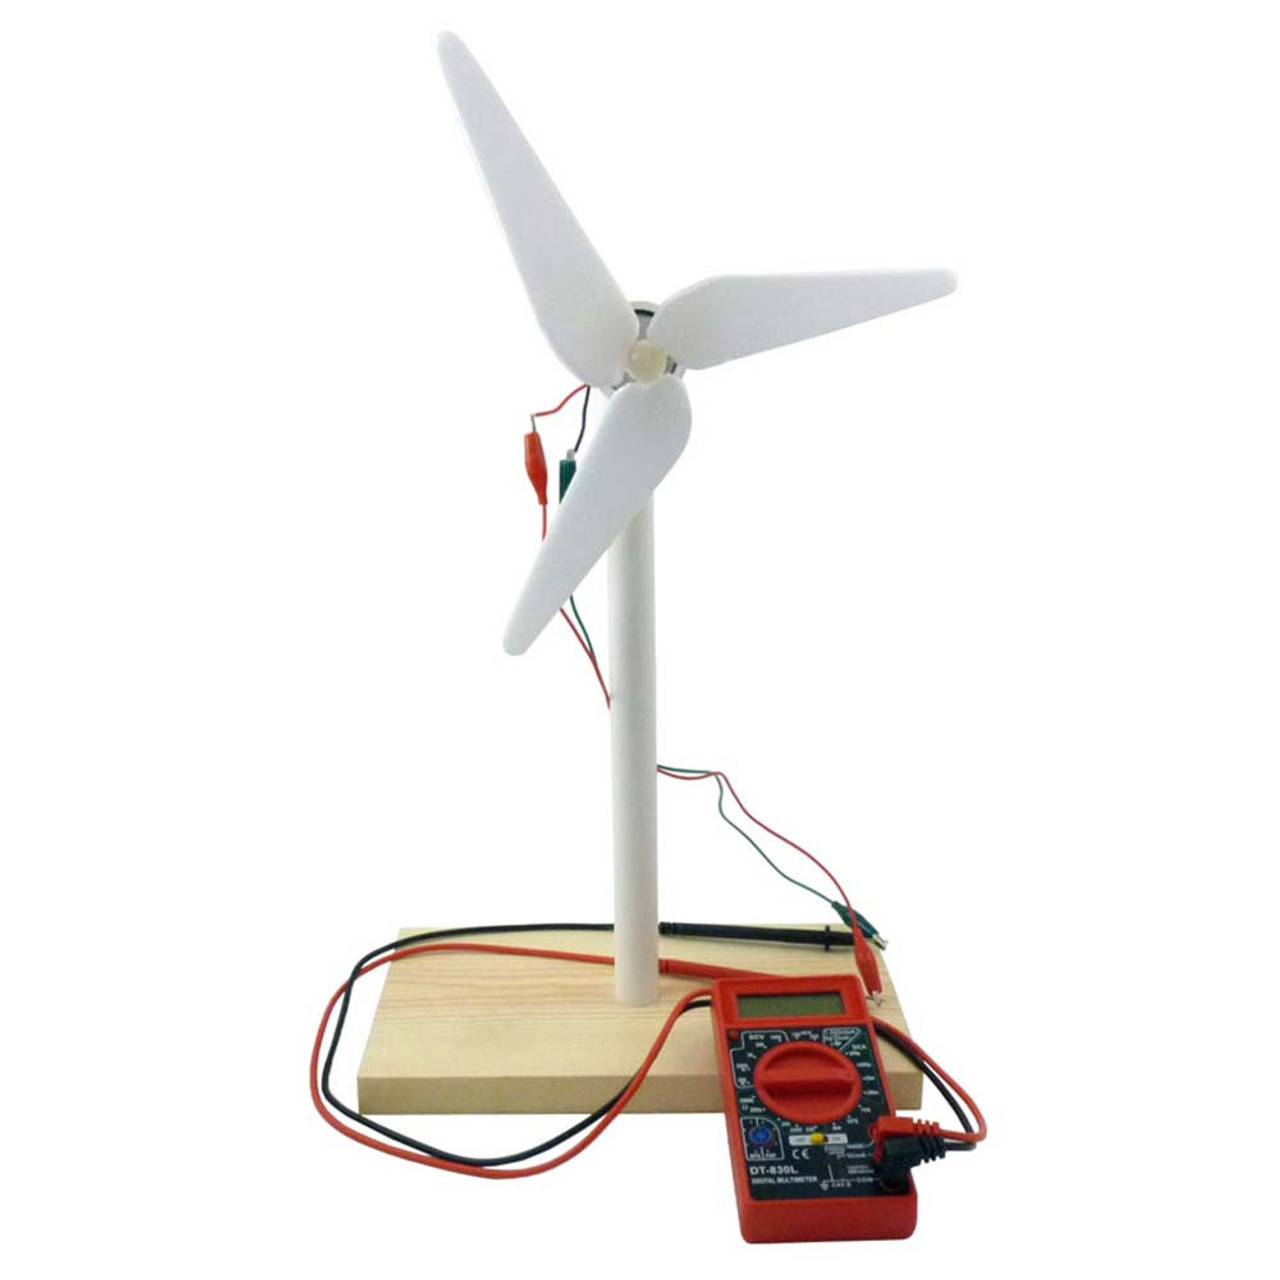 wind turbine kit for students home science tools home built wind generator wiring [ 1280 x 1280 Pixel ]